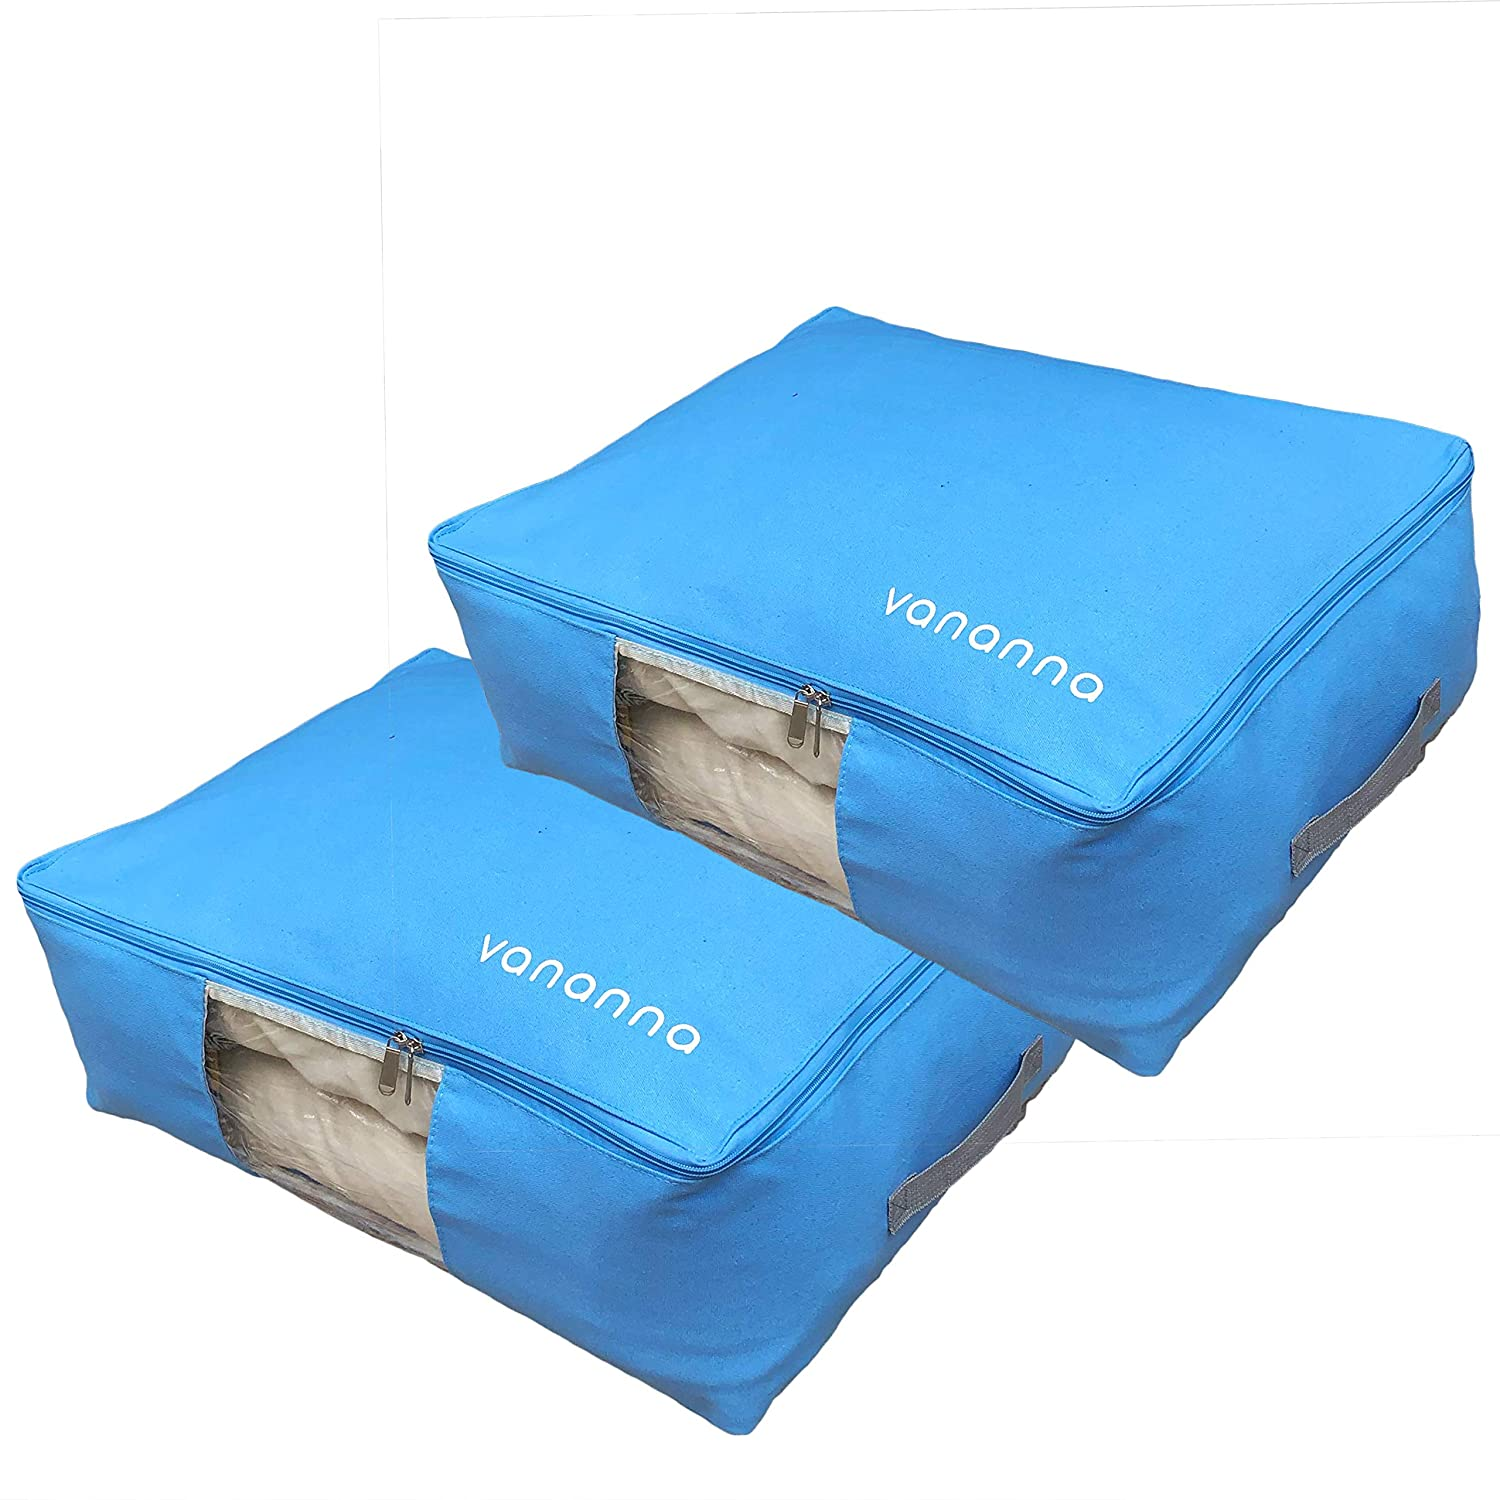 Vananna Foldable Canvas Under Bed Storage Bag with Clear Viewing Window Sweaters Comforters Space Saver for Blankets Clothes Beige Linens